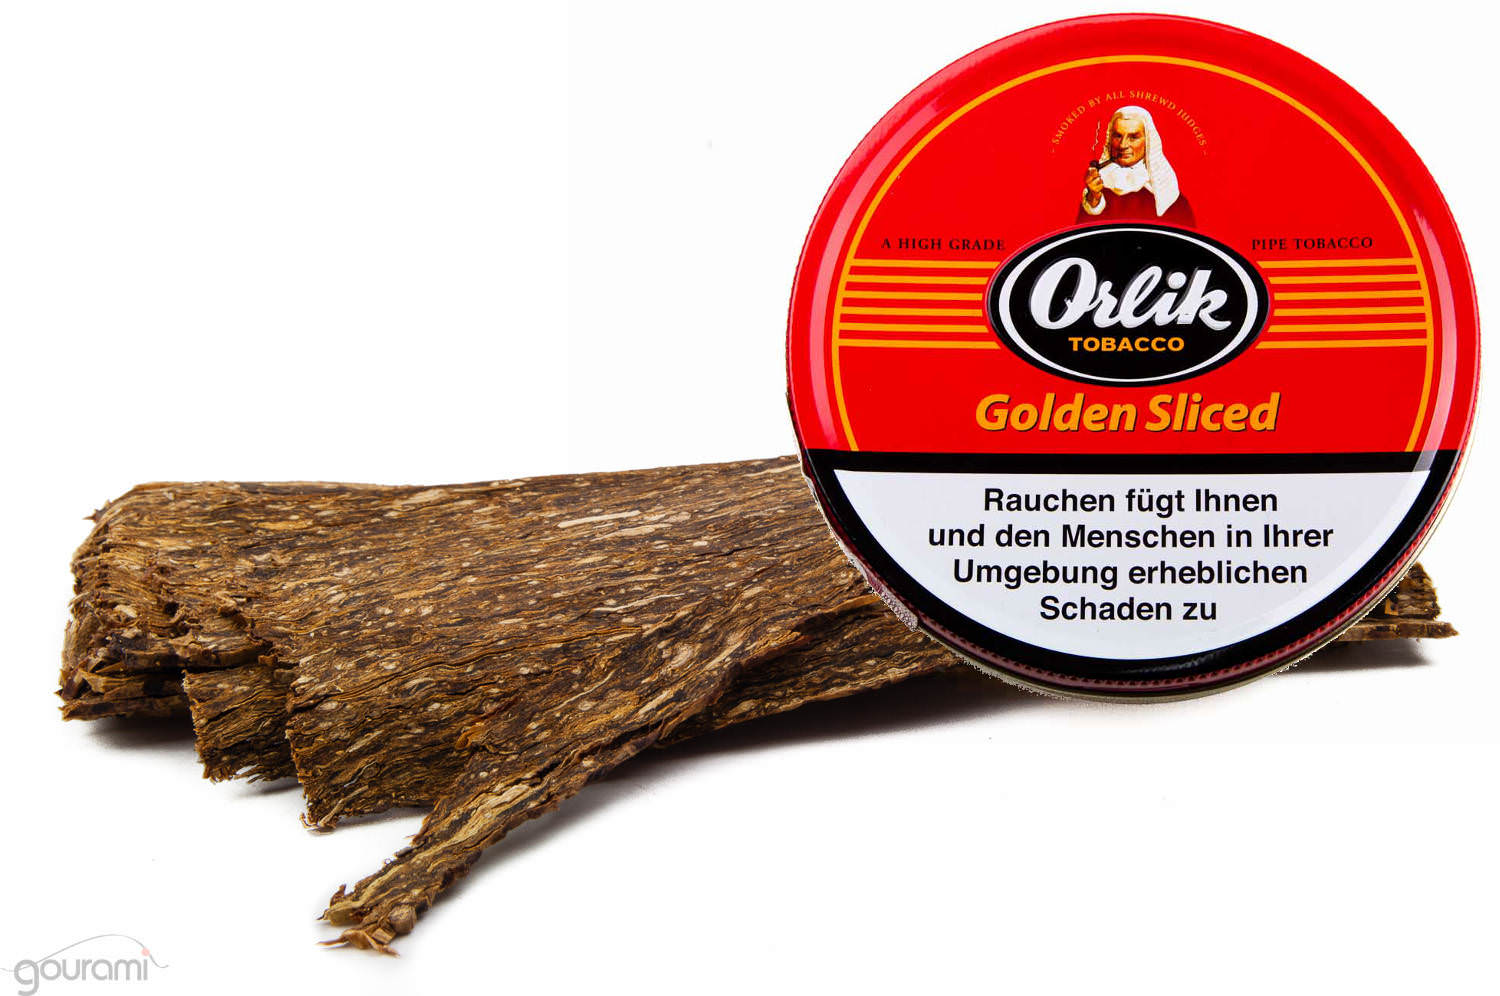 Orlik_Golden-Sliced-100g